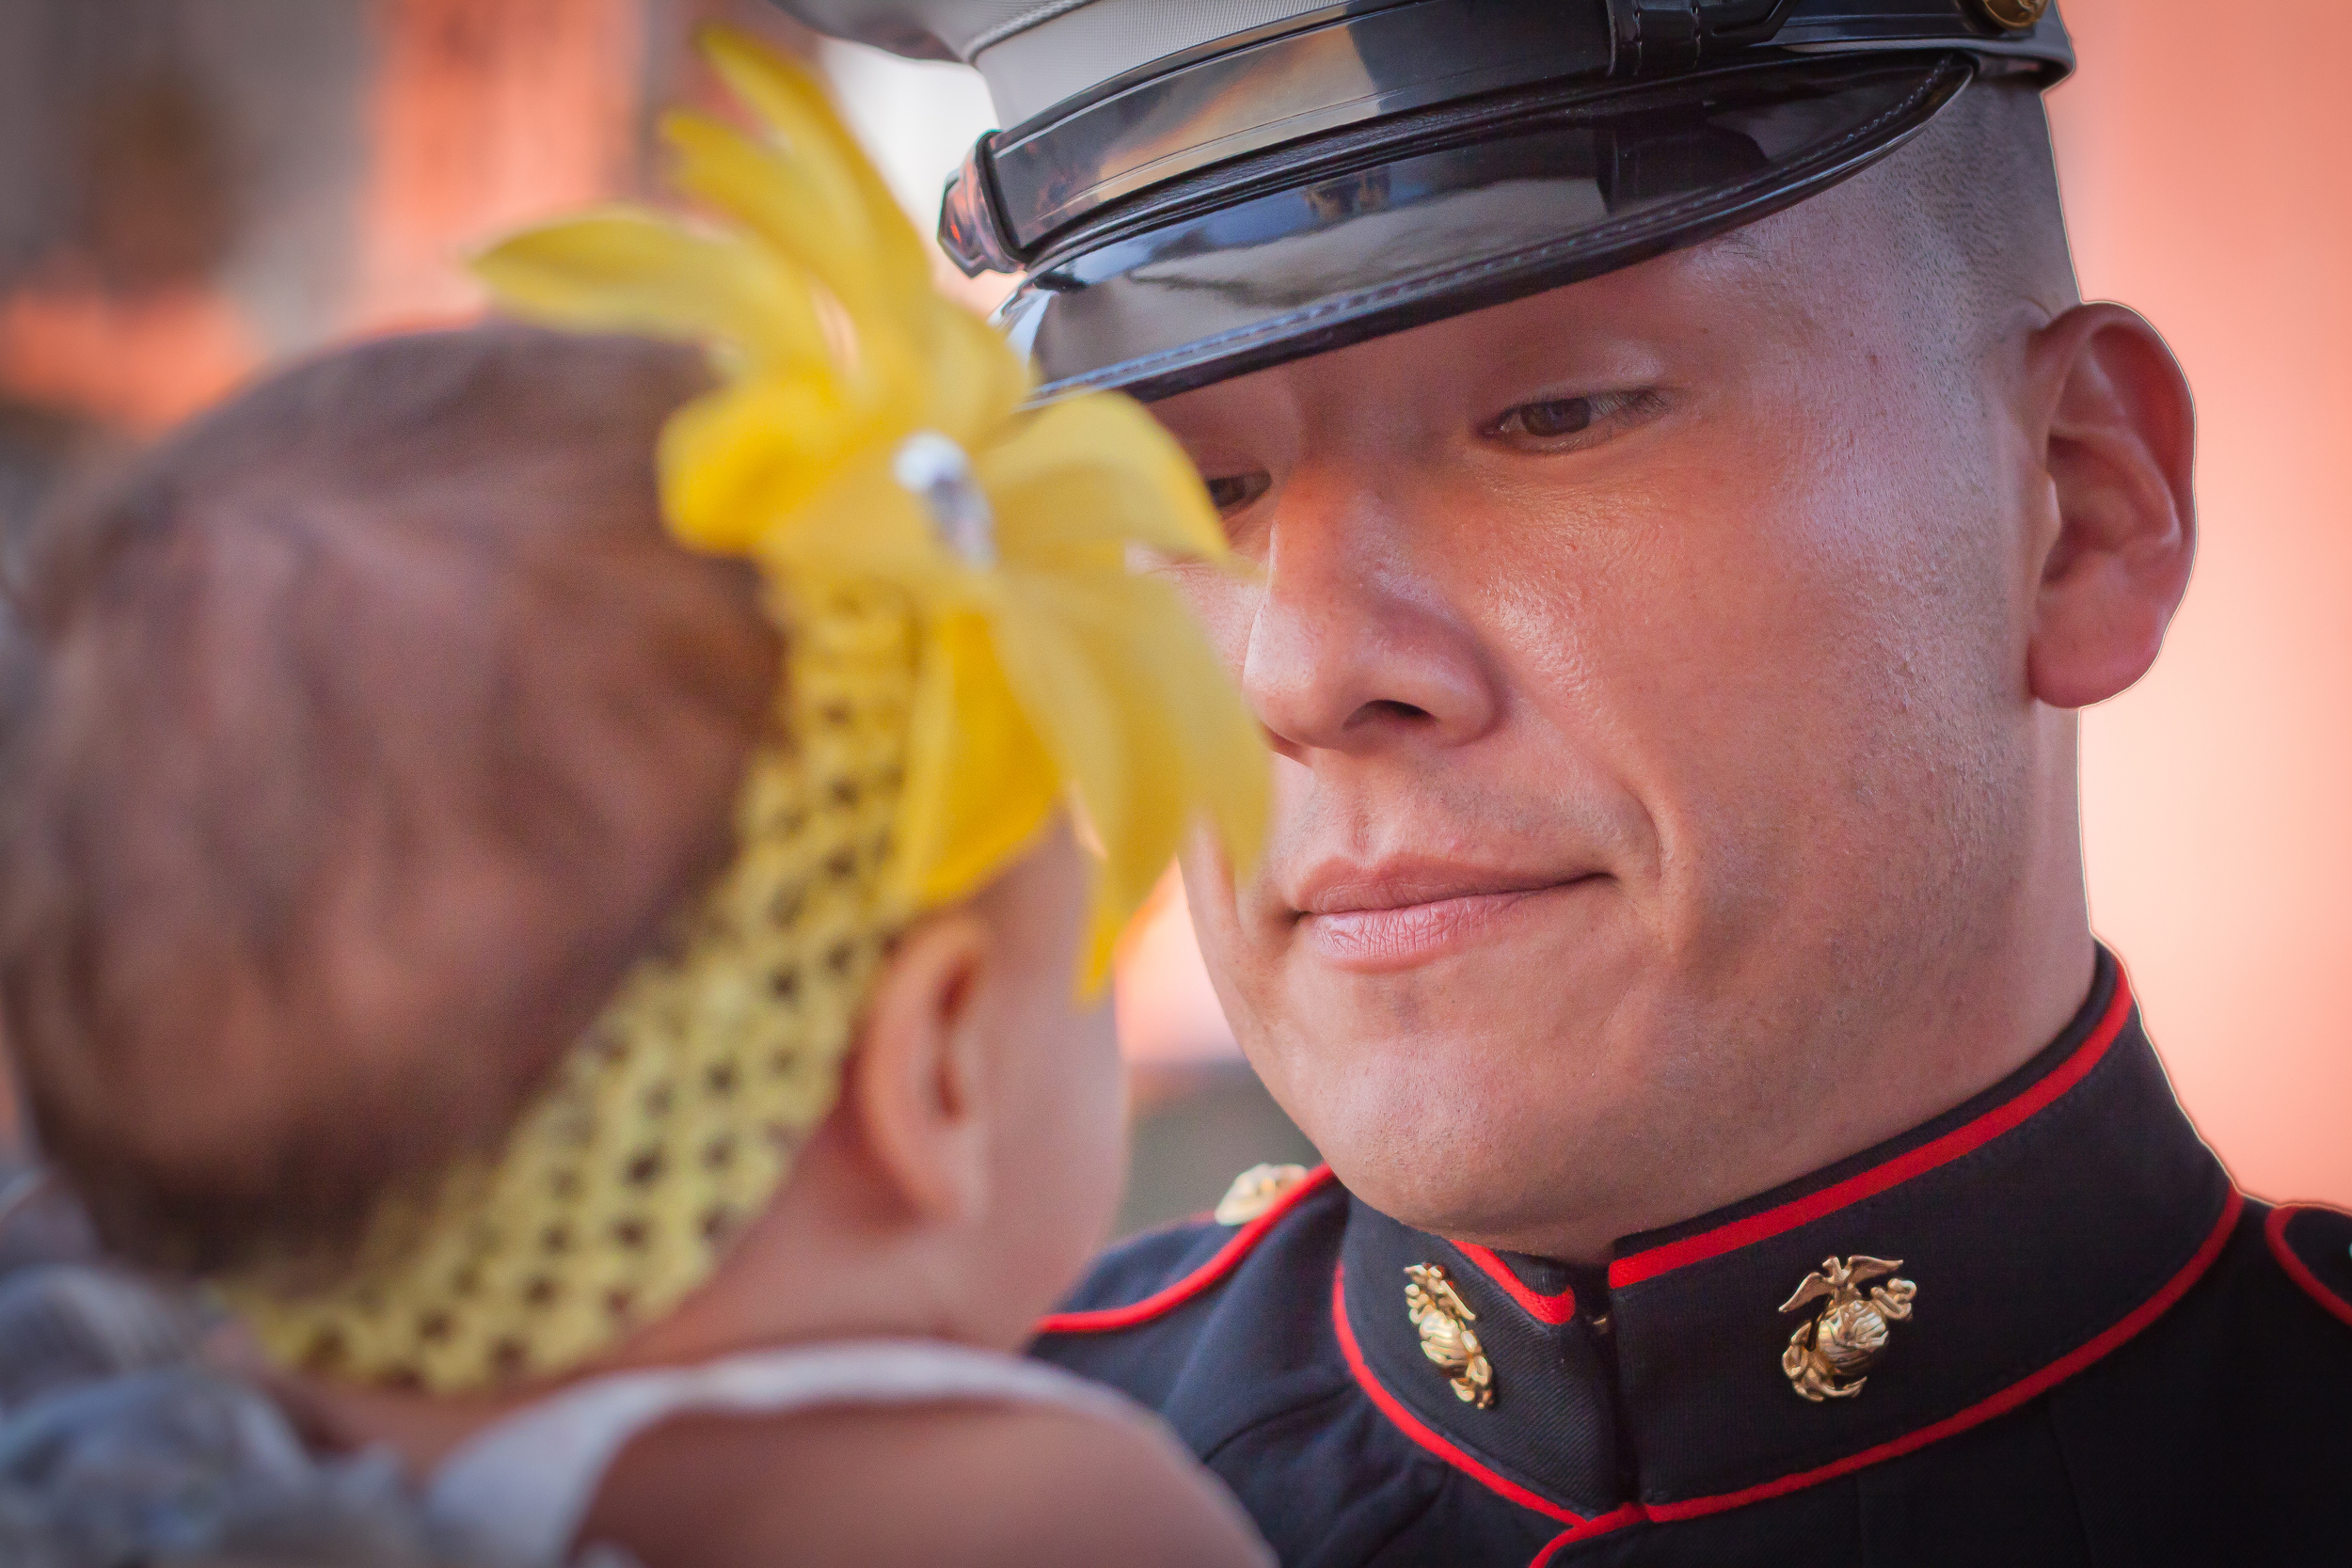 """I asked him how long he was going to be in Afghanistan. He said 6 months. He wasn't sure if he would return this time...His new born daughter being more than six months old I asked him:""""So you'll miss her first birthday?"""" and I caught his look into her eyes...."""